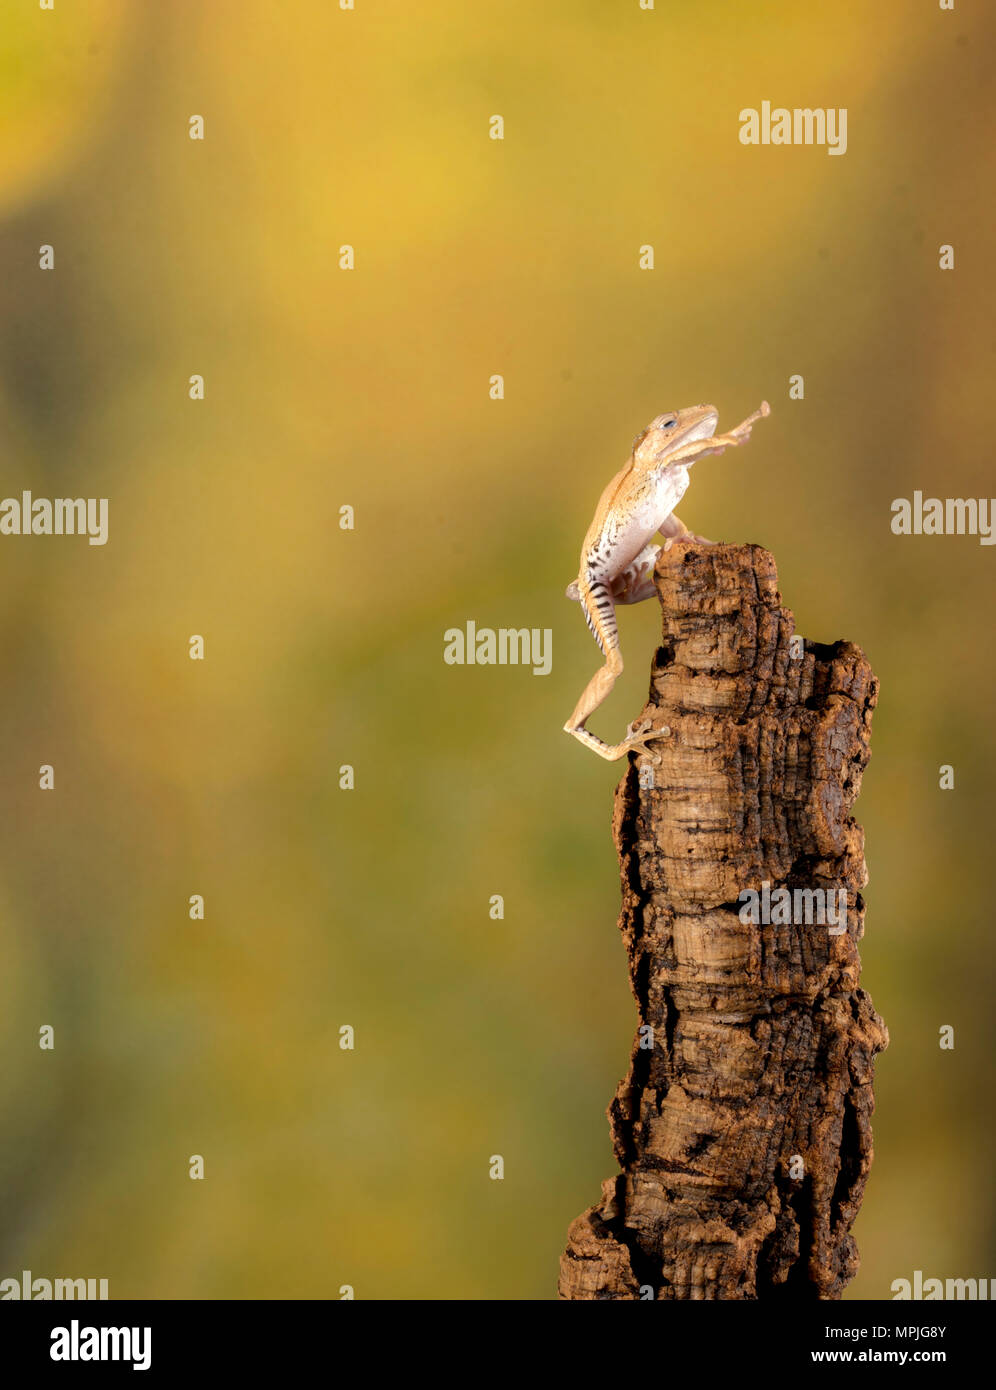 a frog celebrating his victory of reaching the top! - Stock Image